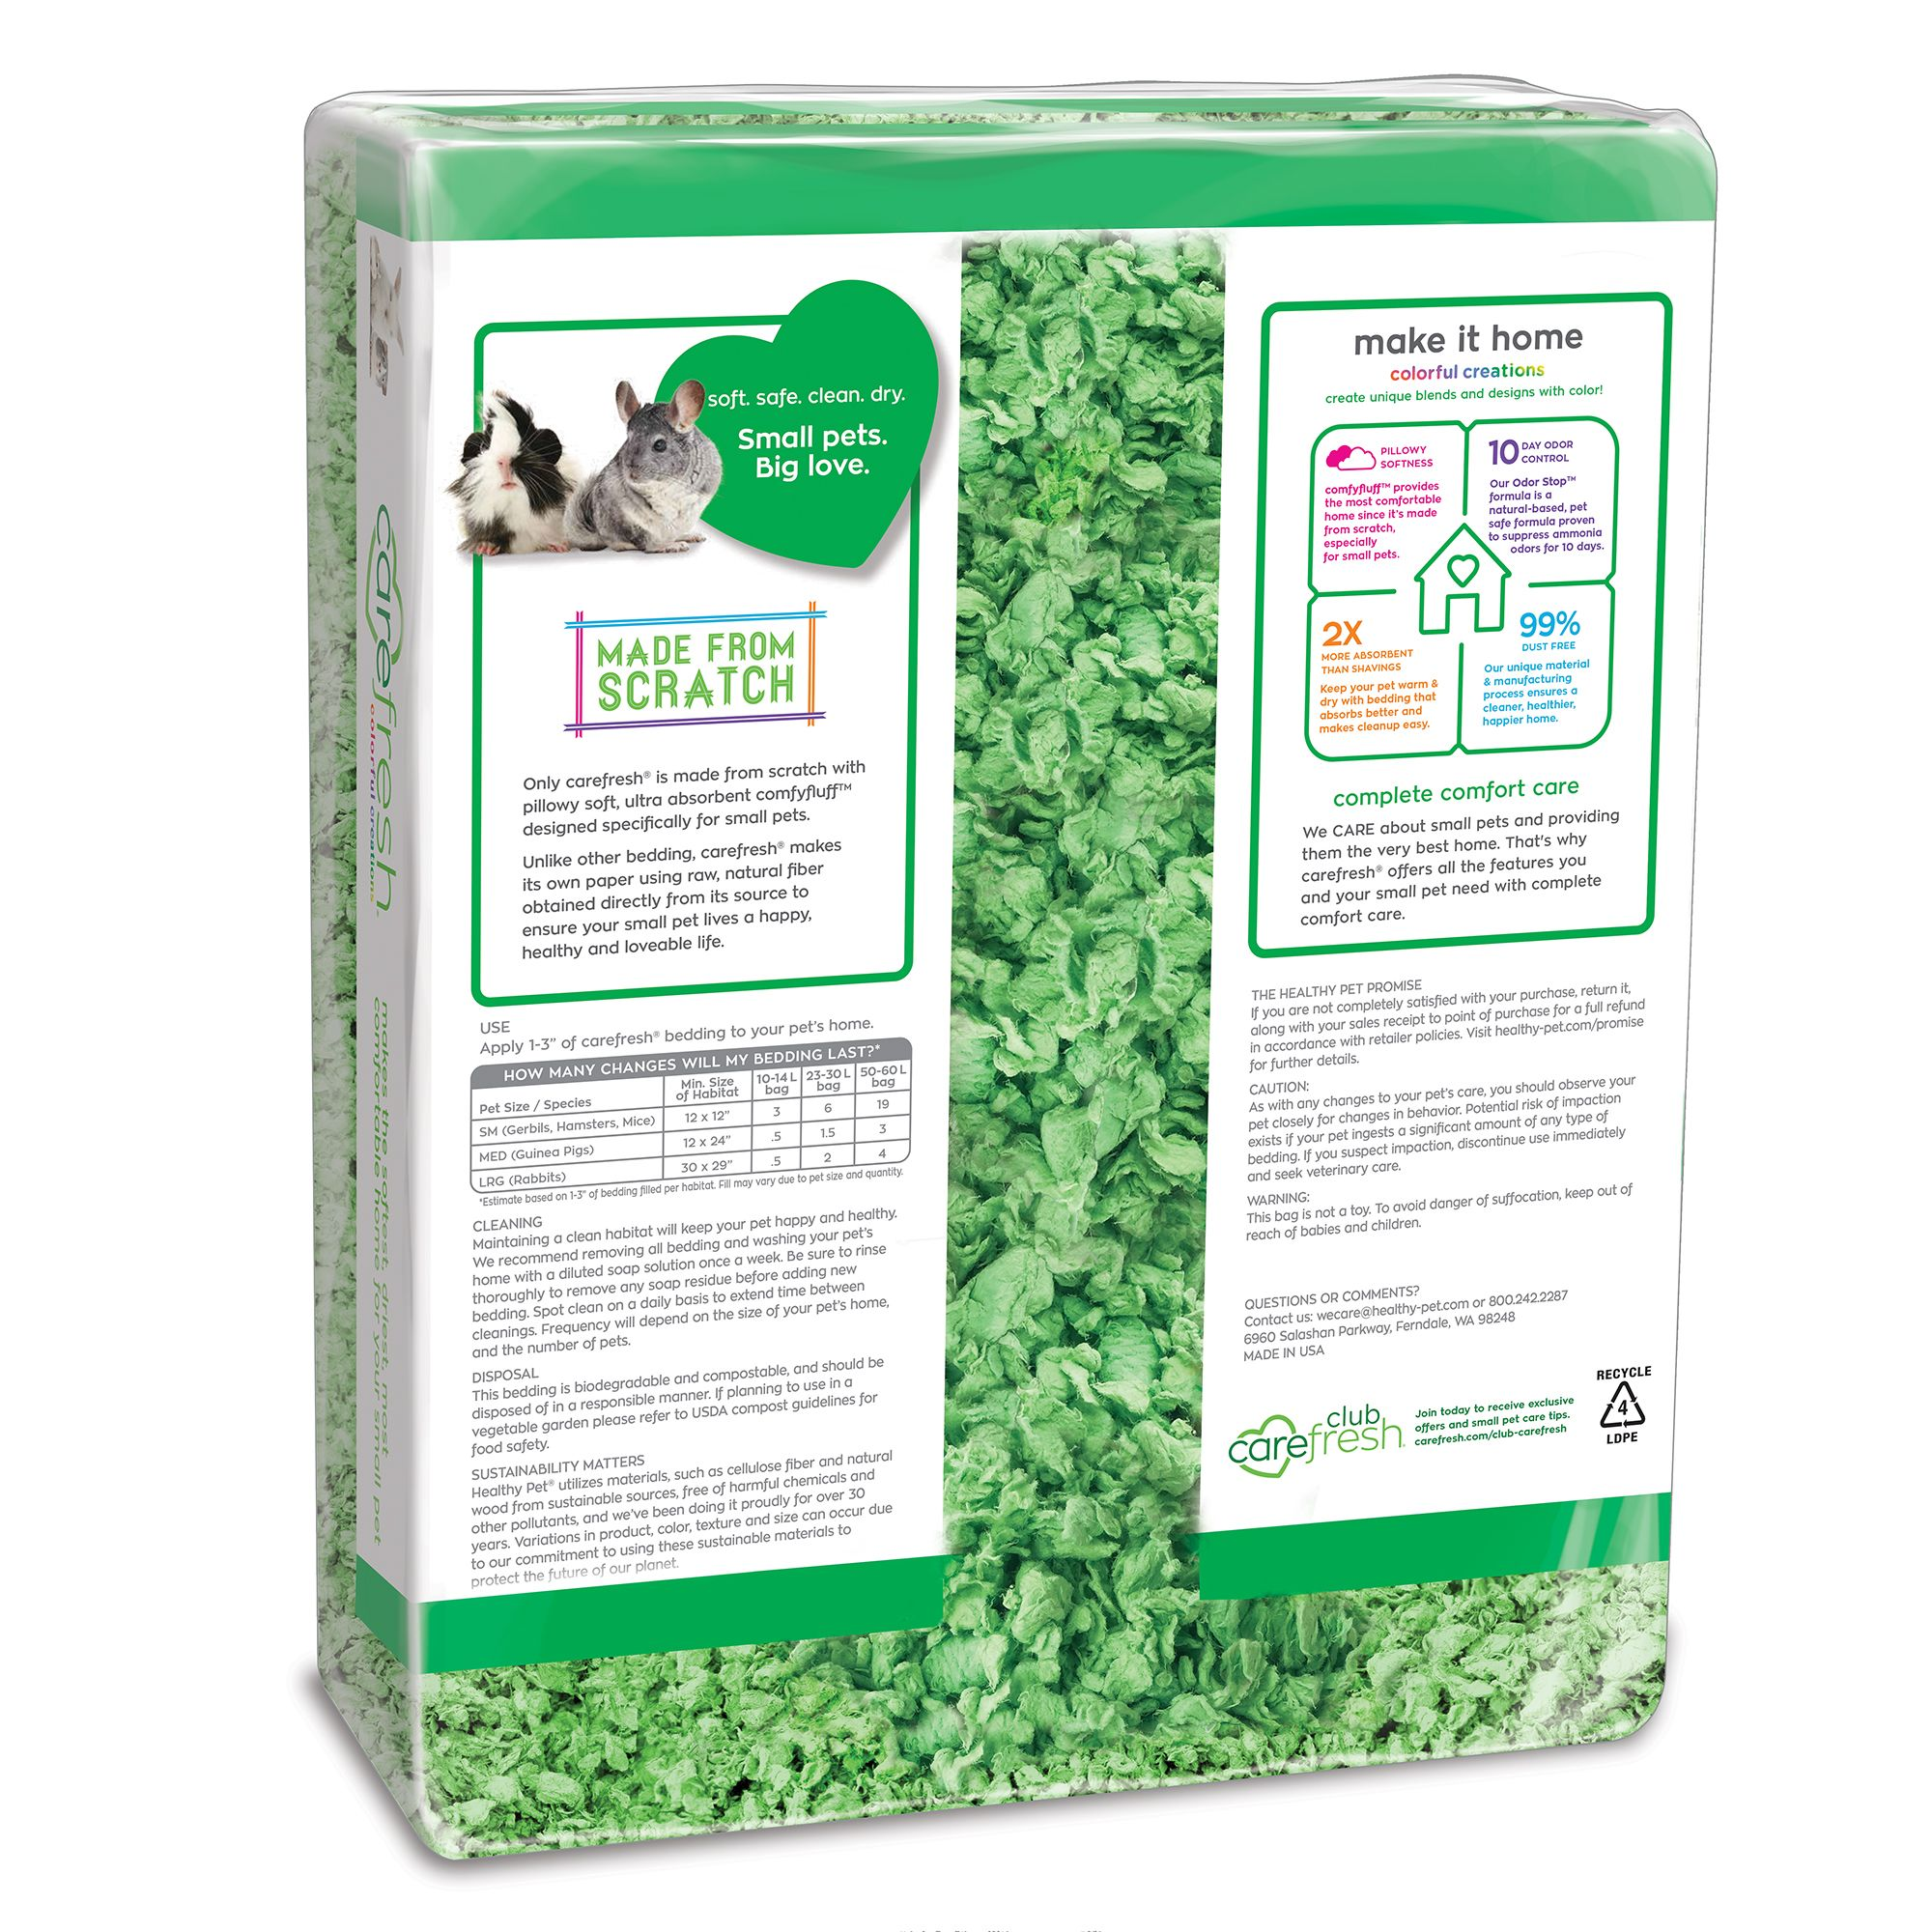 carefresh bedding pets at home